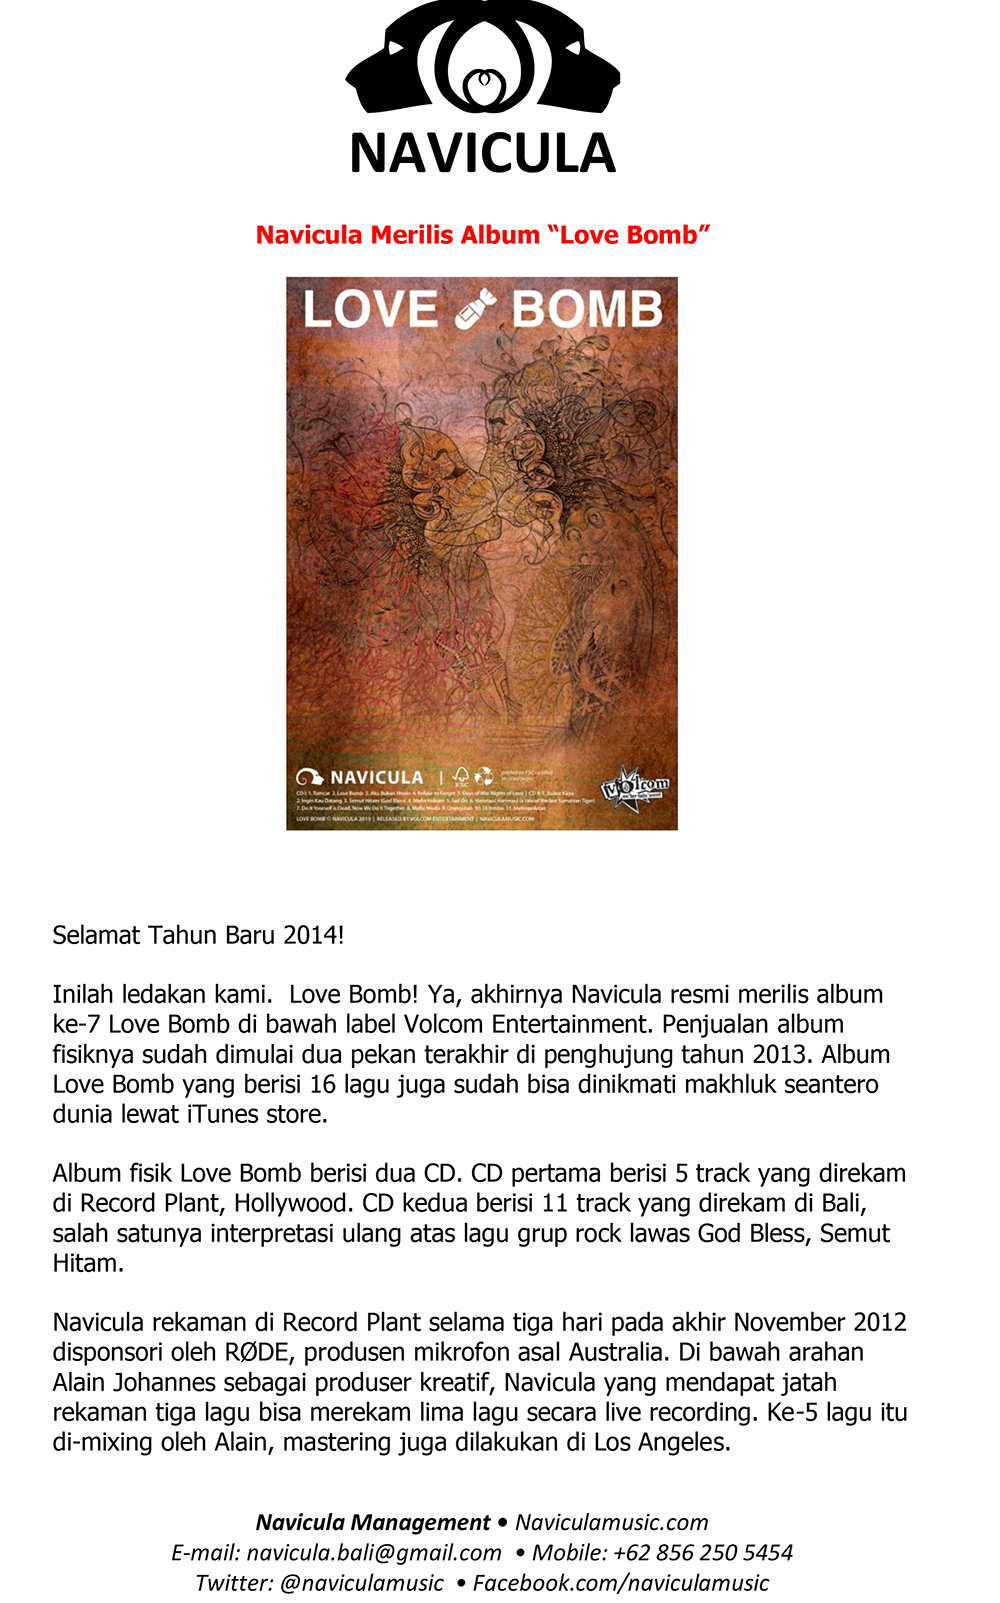 Navicula-Love Bomb -Pers Release-1 EDIT